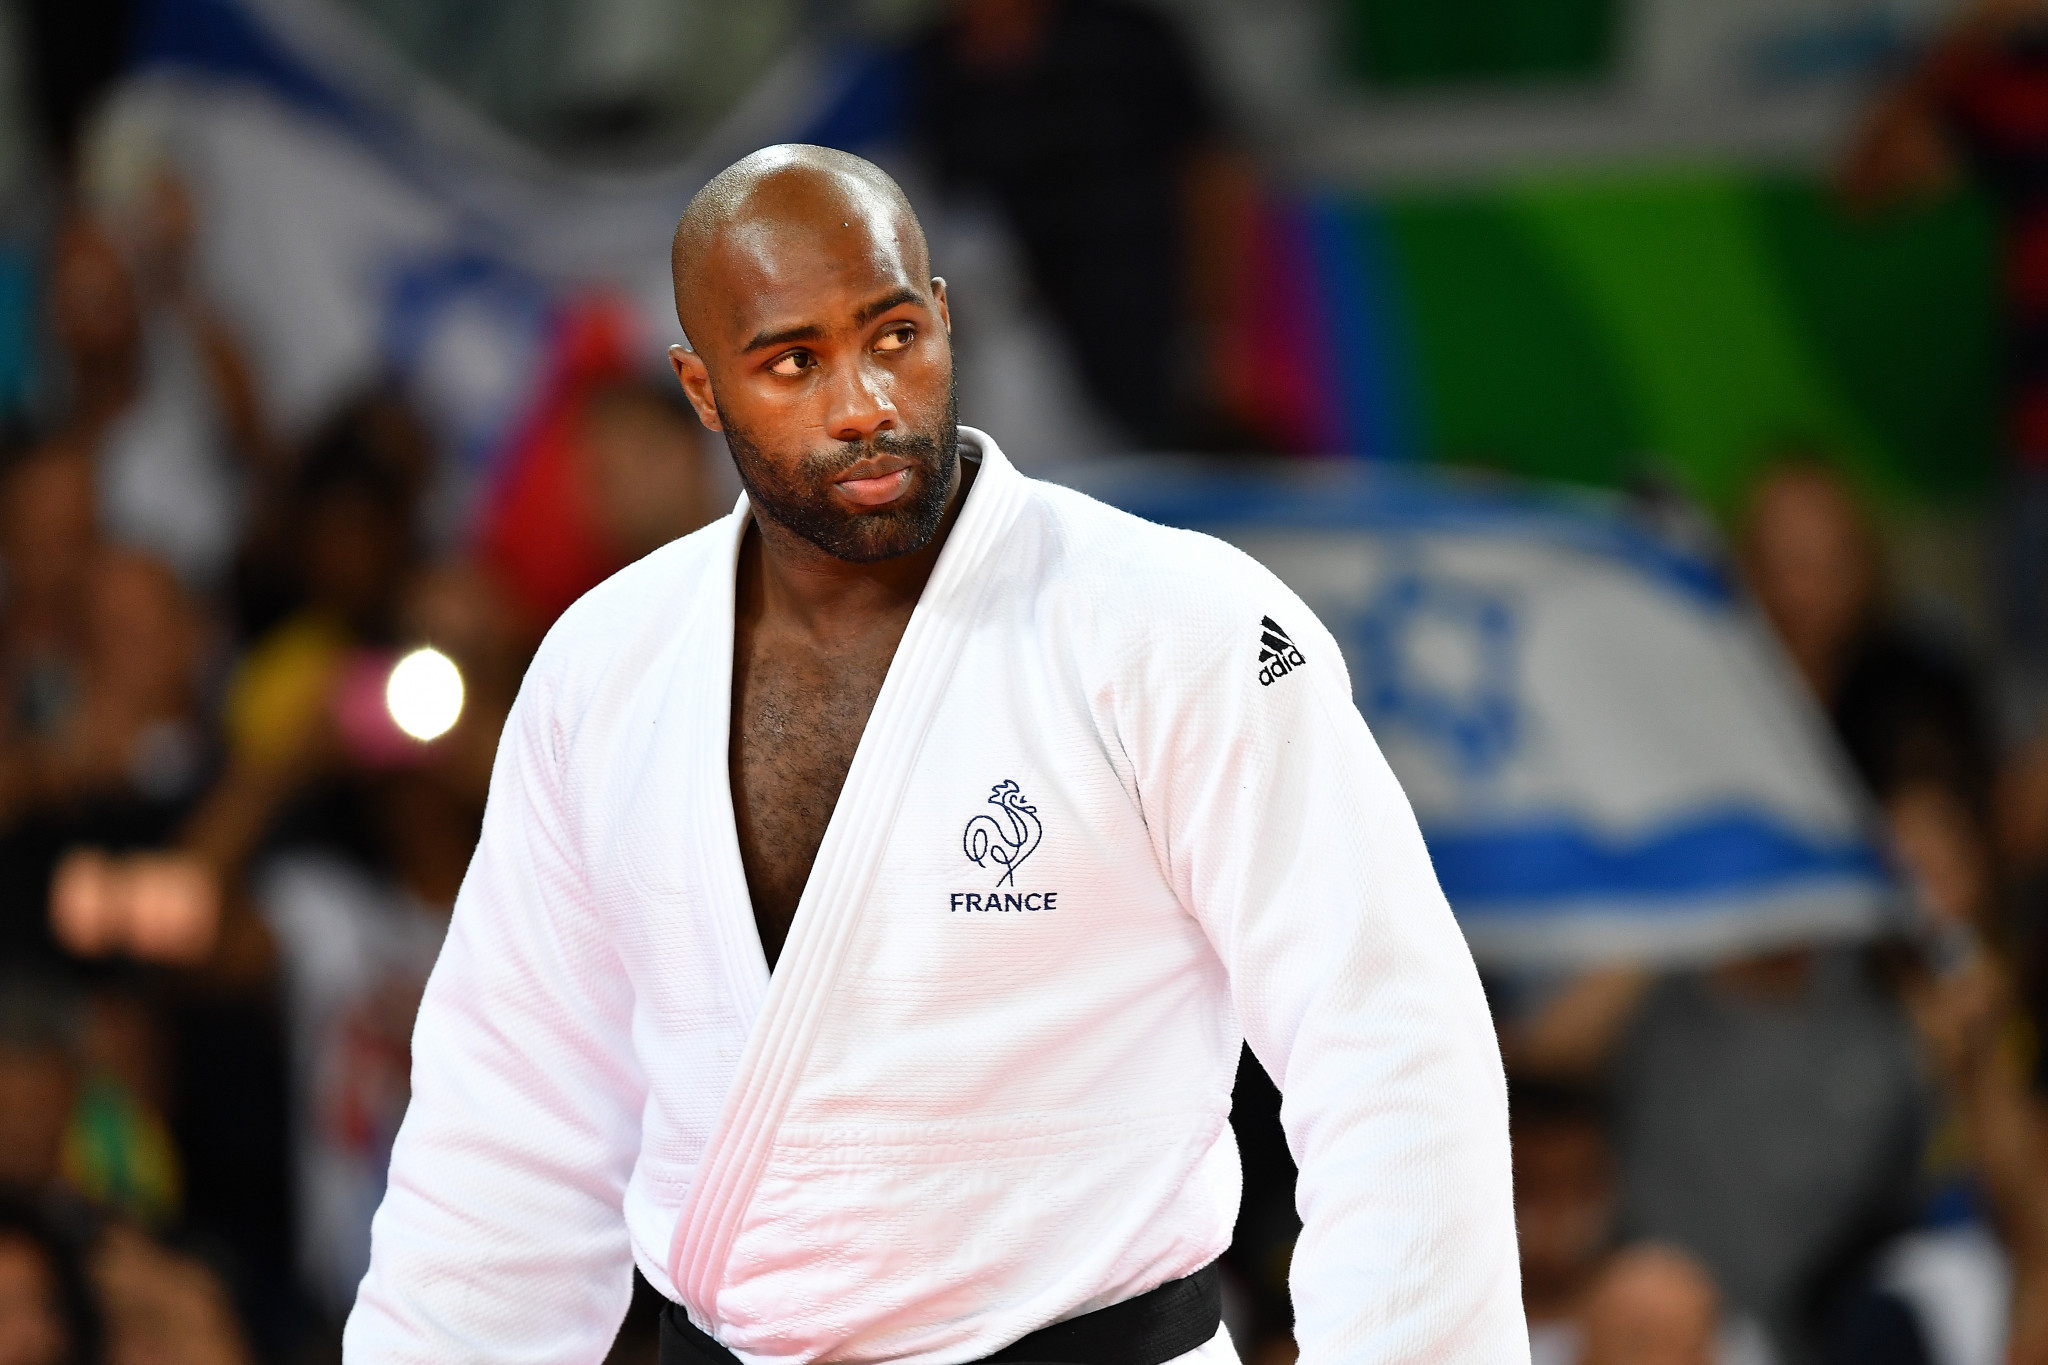 Riner targeting Qatar Masters as first step towards third Olympic judo title